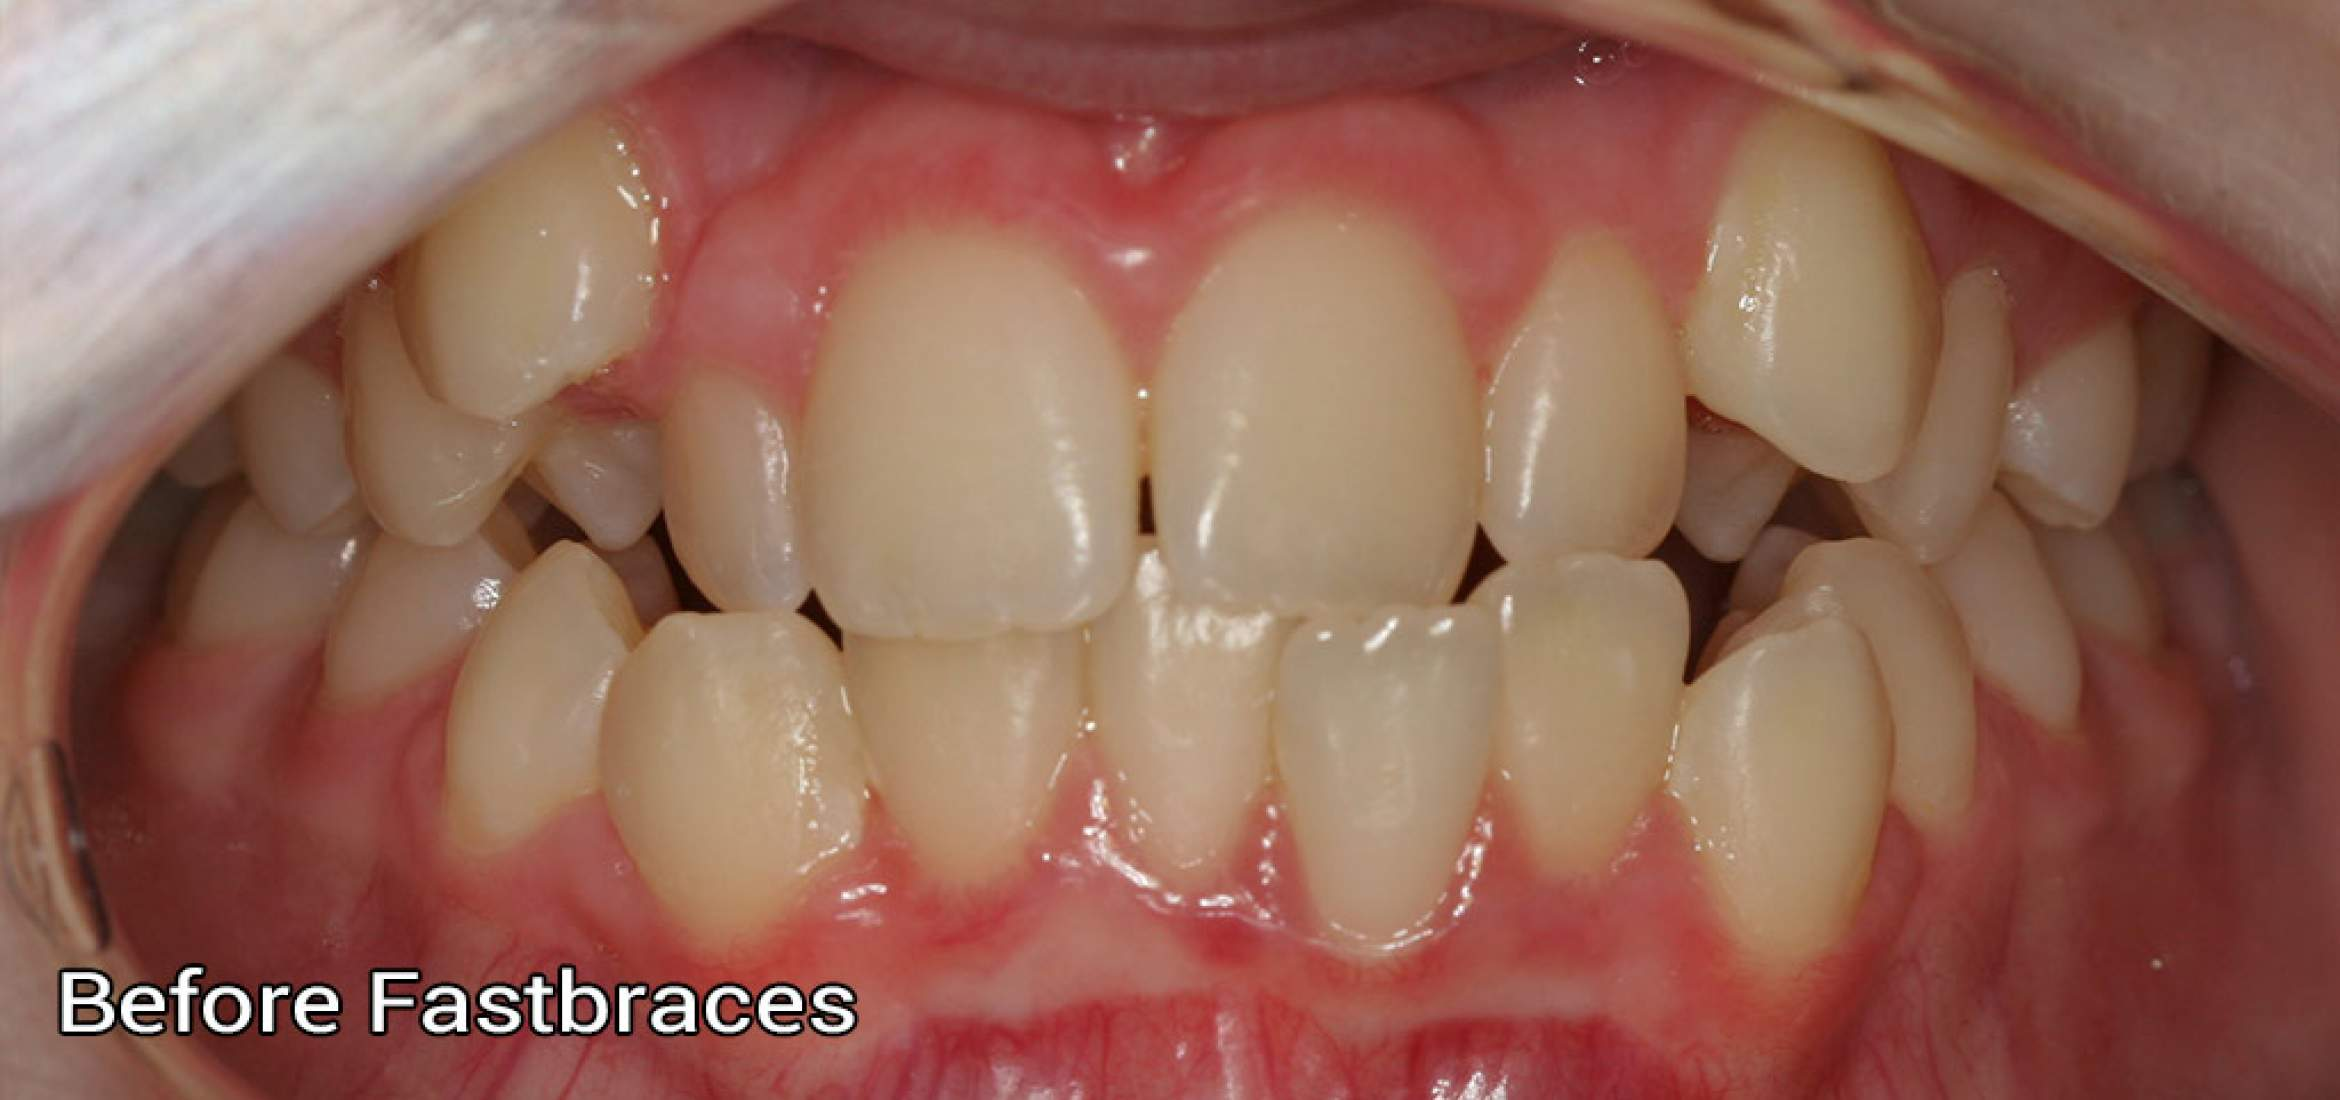 Fastbraces1 Before Photo